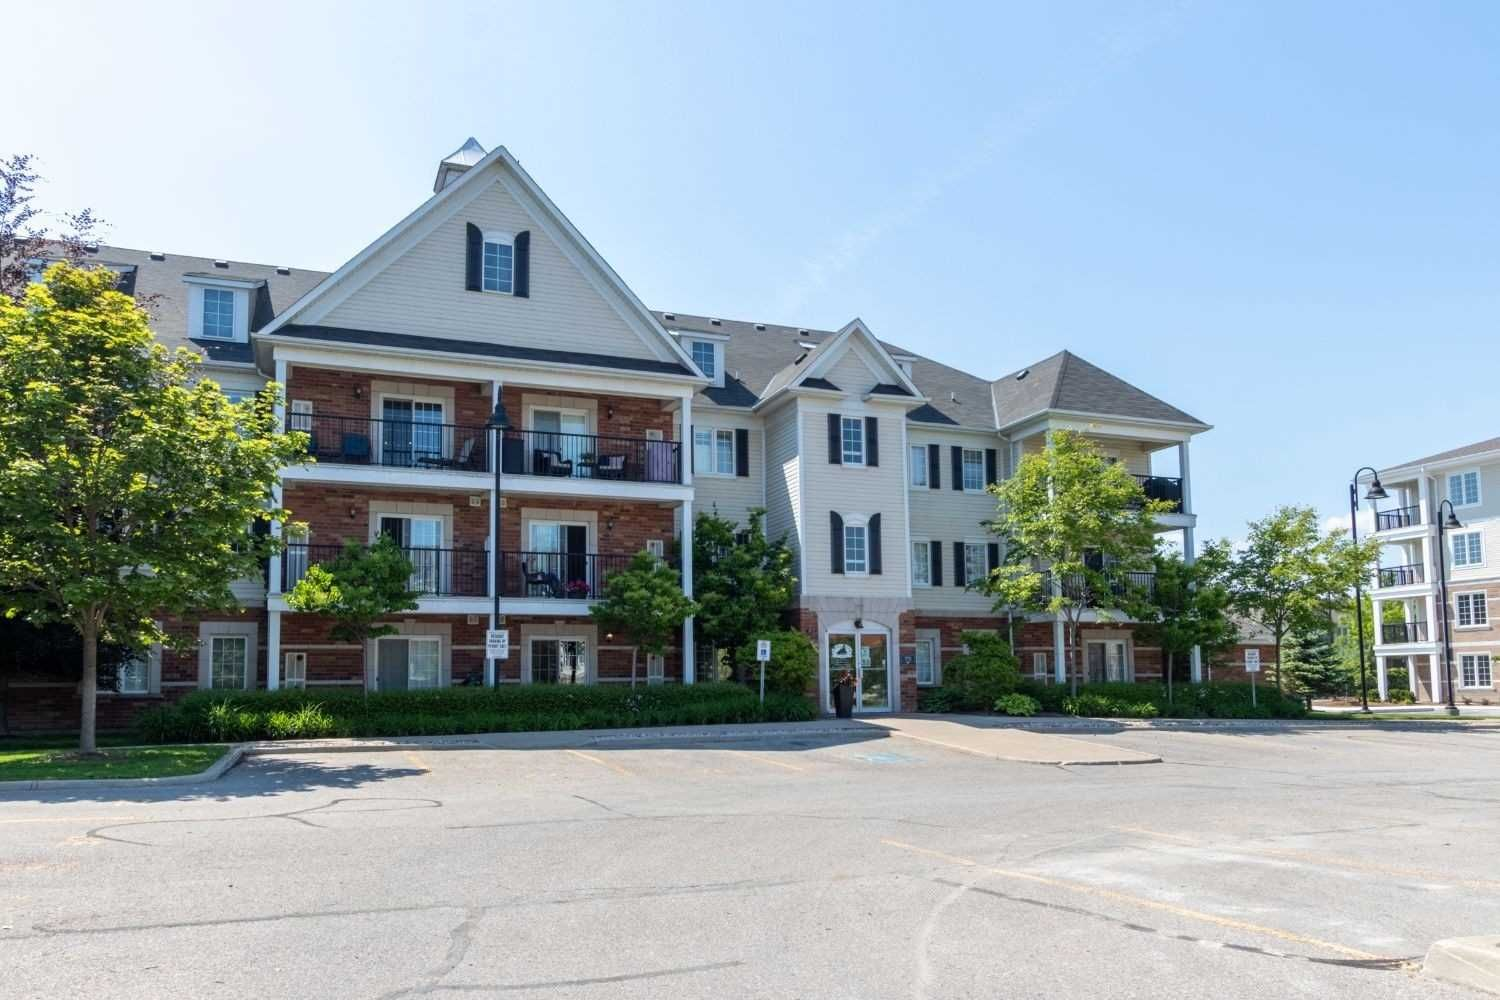 75 Shipway Ave, unit 102 for sale in Toronto - image #2